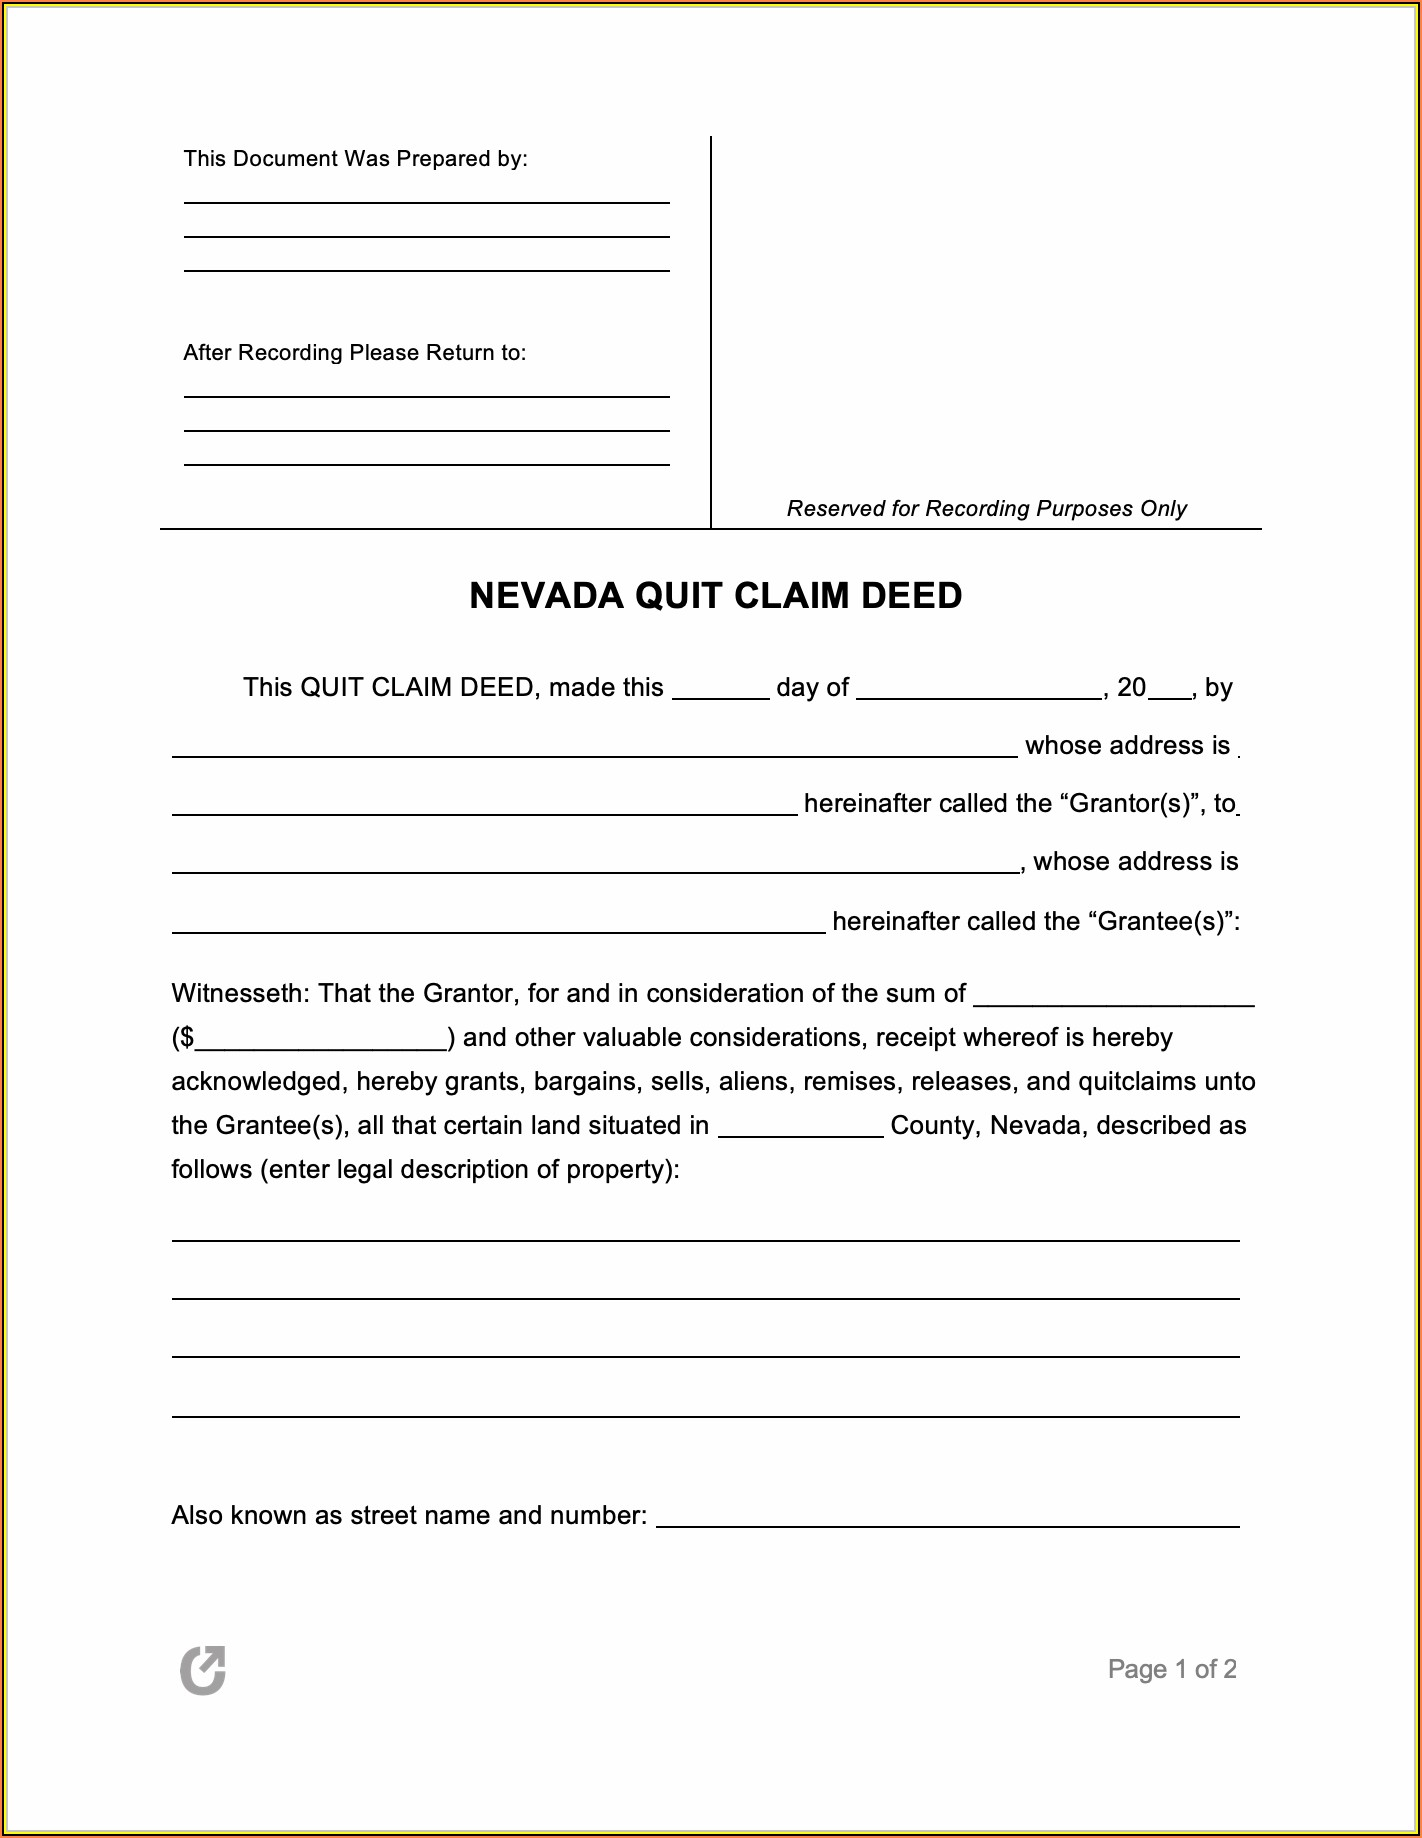 Quit Claim Deed Form Nevada Pdf